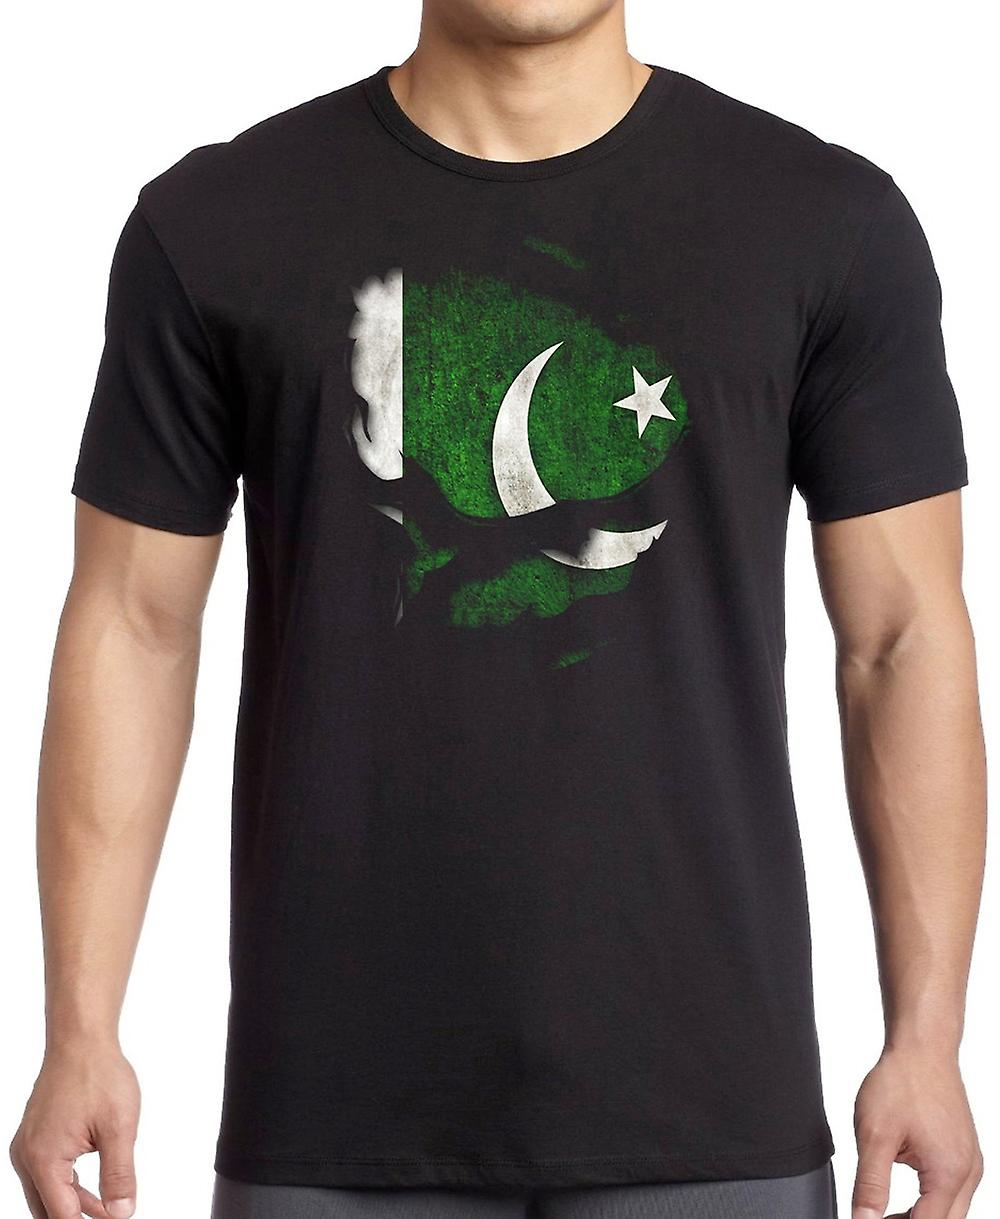 Pakistan Ripped Effect Under Shirt T Shirt